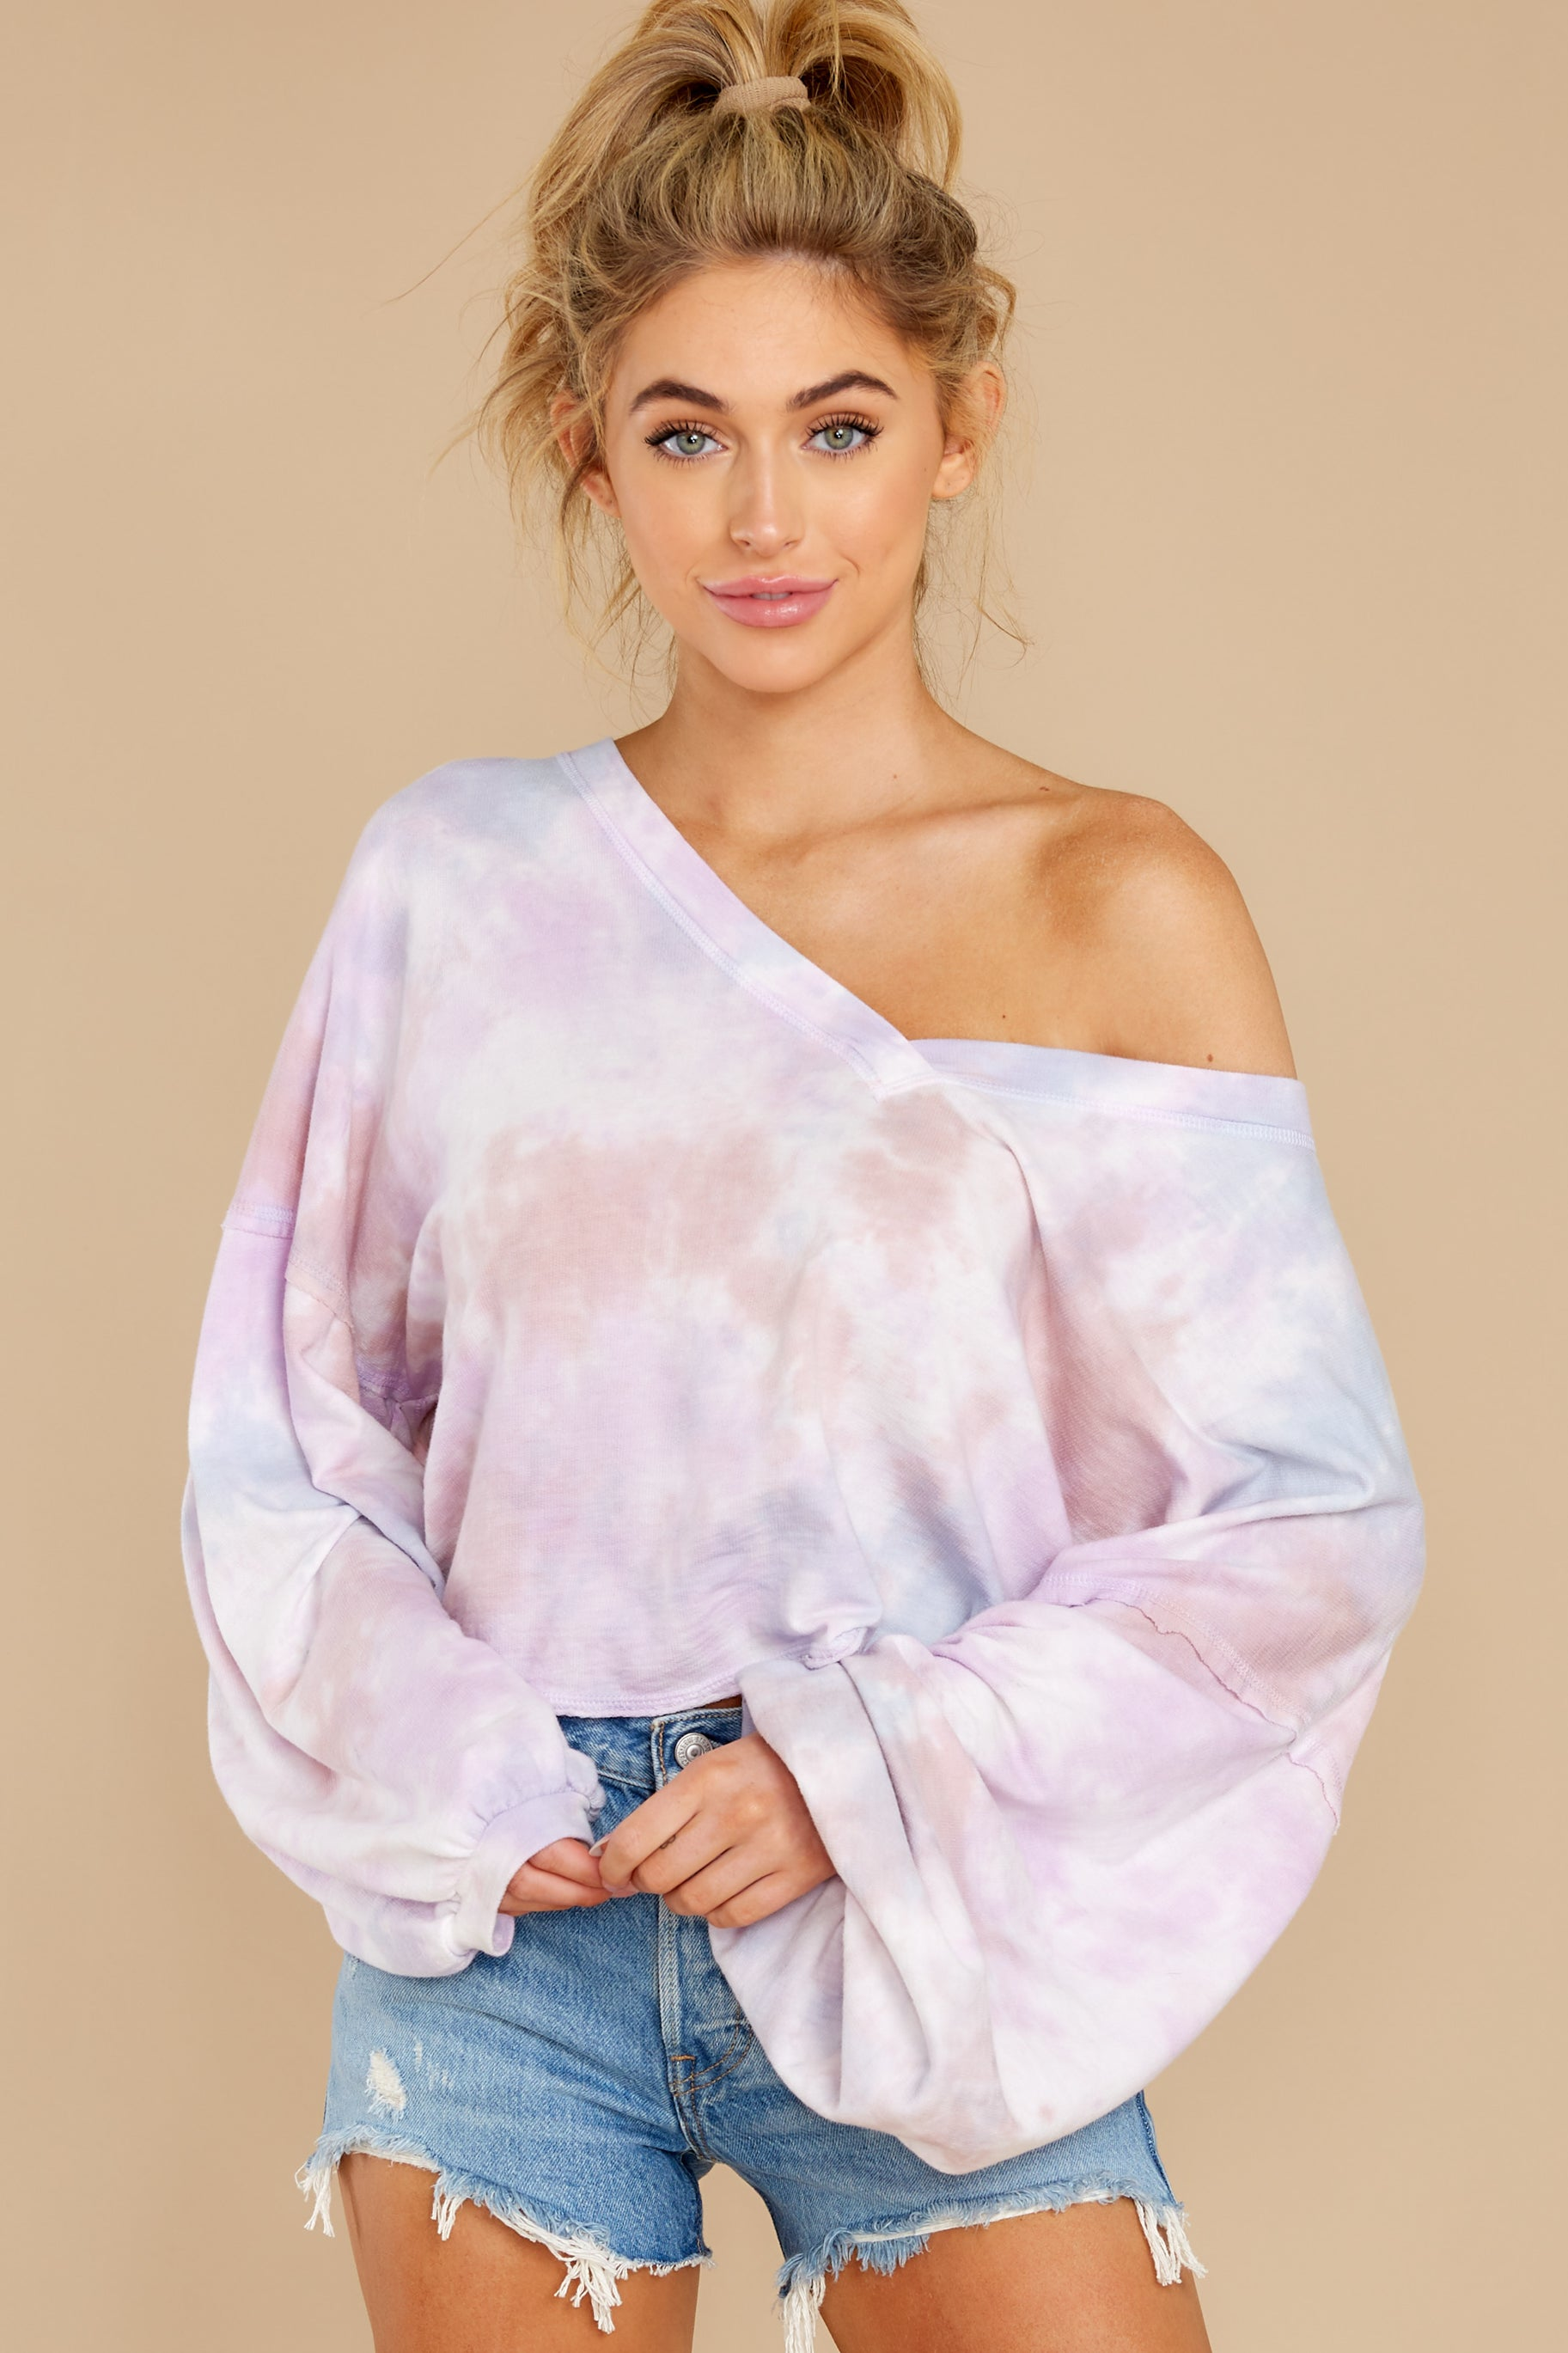 6 Feel Like Flying Lavender Multi Tie Dye Top at reddress.com